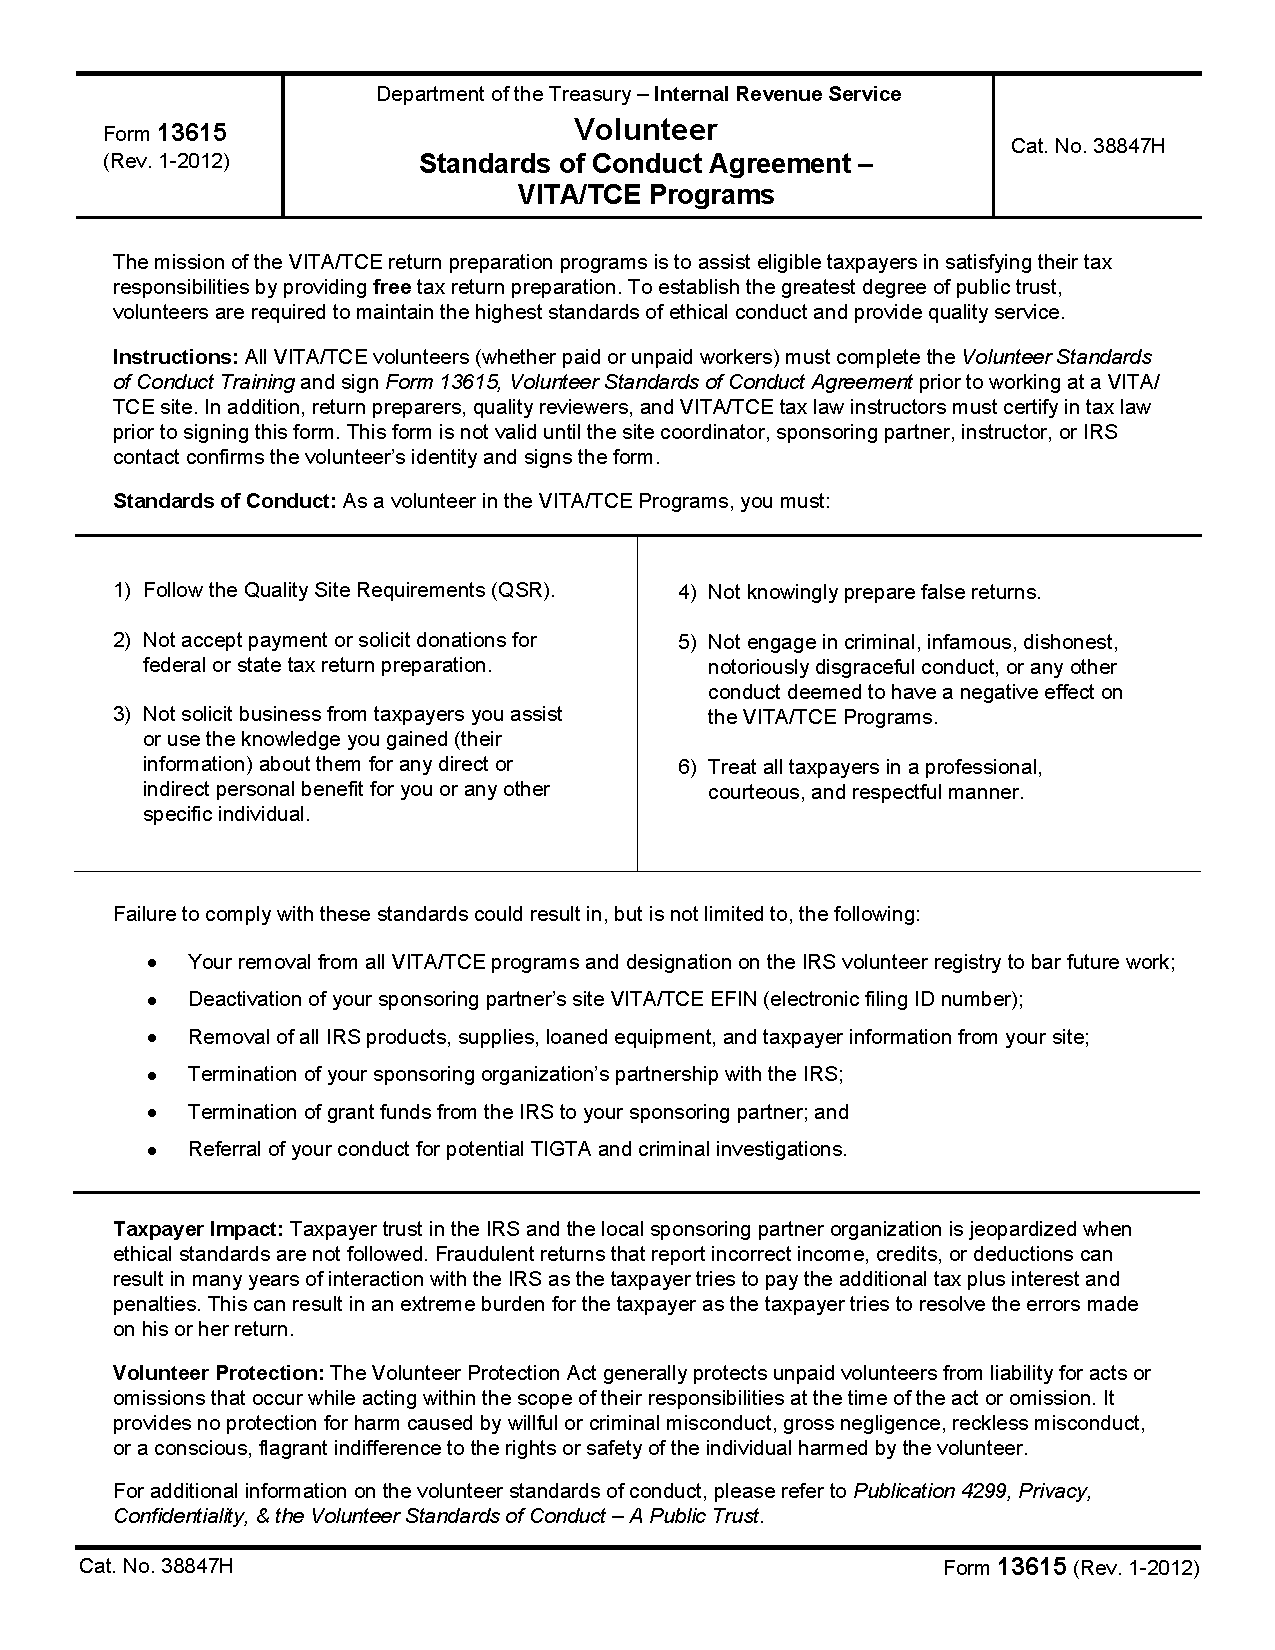 Form 13615 Volunteer Standards Of Conduct Agreement Vitatce Programs